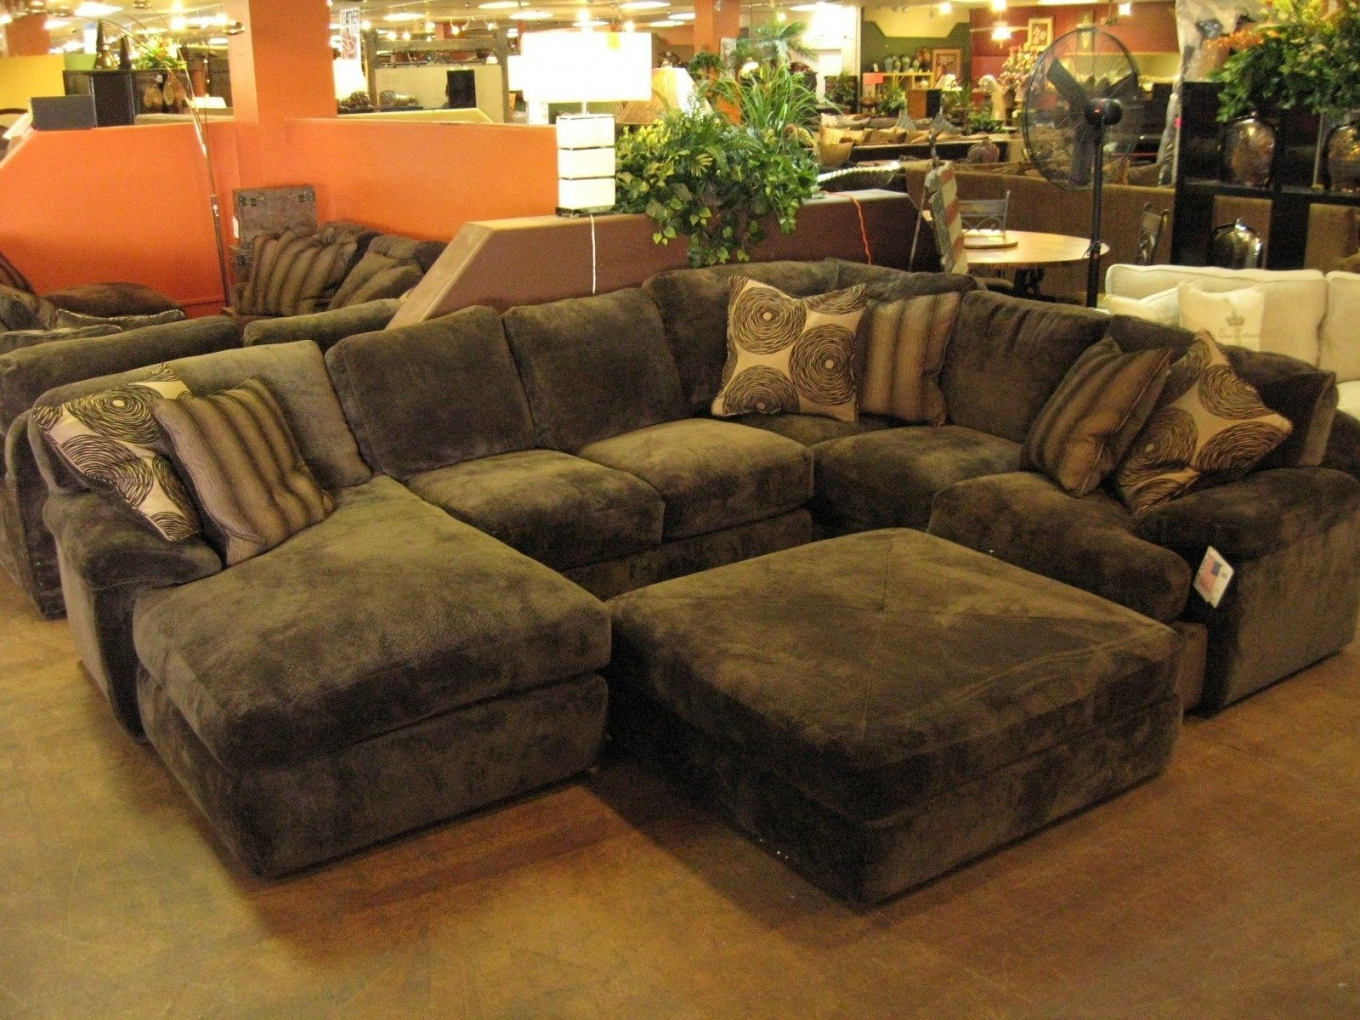 Comfy Sectional Sofas Land Design Reference Pertaining To Comfy Sectional Sofa (Image 7 of 15)